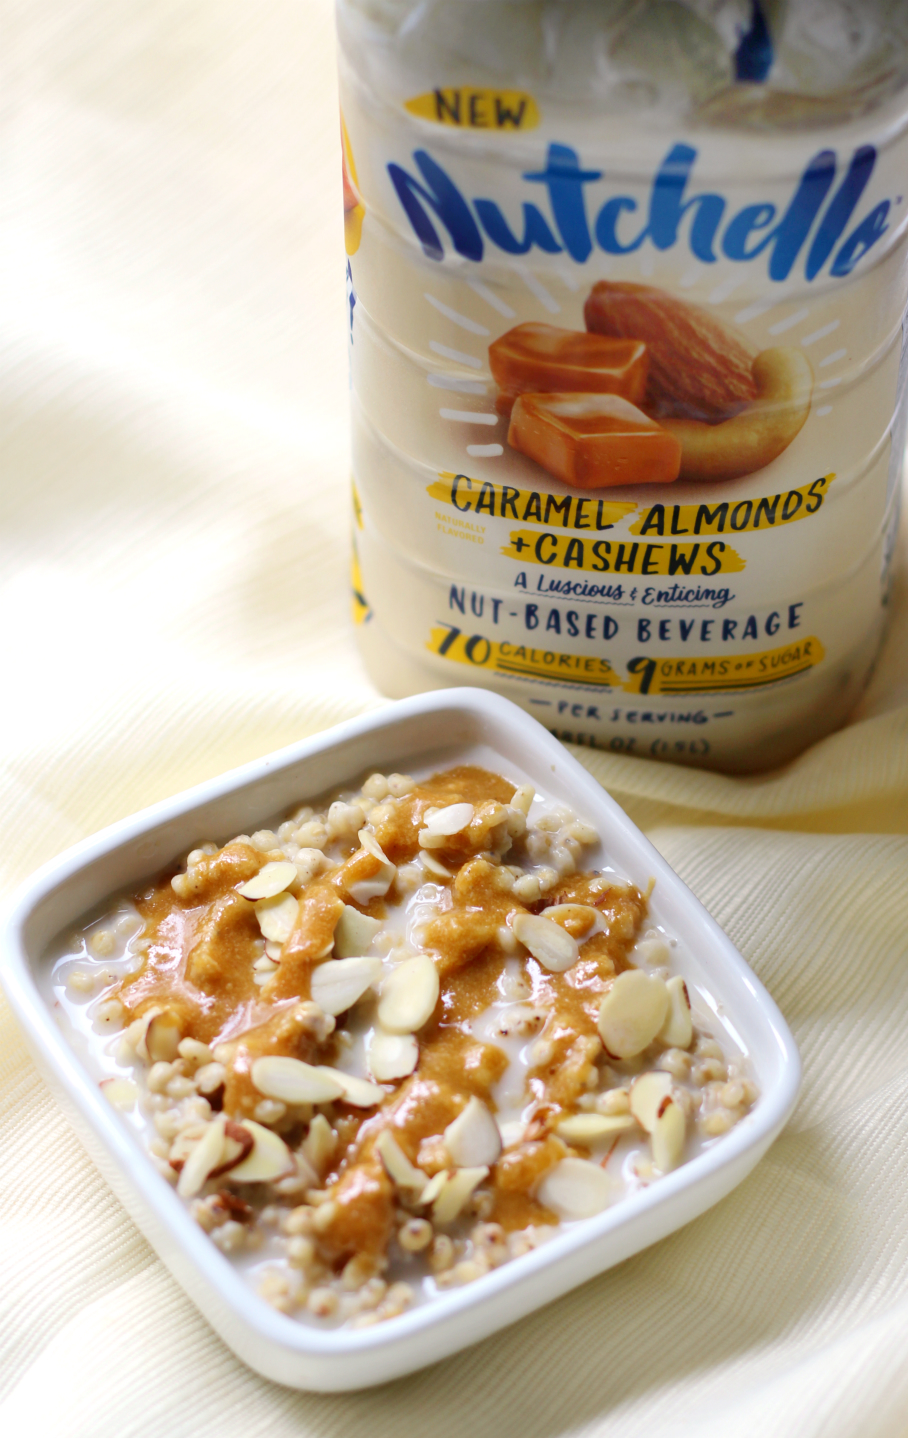 Caramel Almond Sorghum Porridge | Strength and Sunshine @RebeccaGF666 A delicious, healthy, whole grain breakfast porridge that's gluten-free and vegan. This Caramel Almond Sorghum Porridge will put your typical oatmeal to shame!